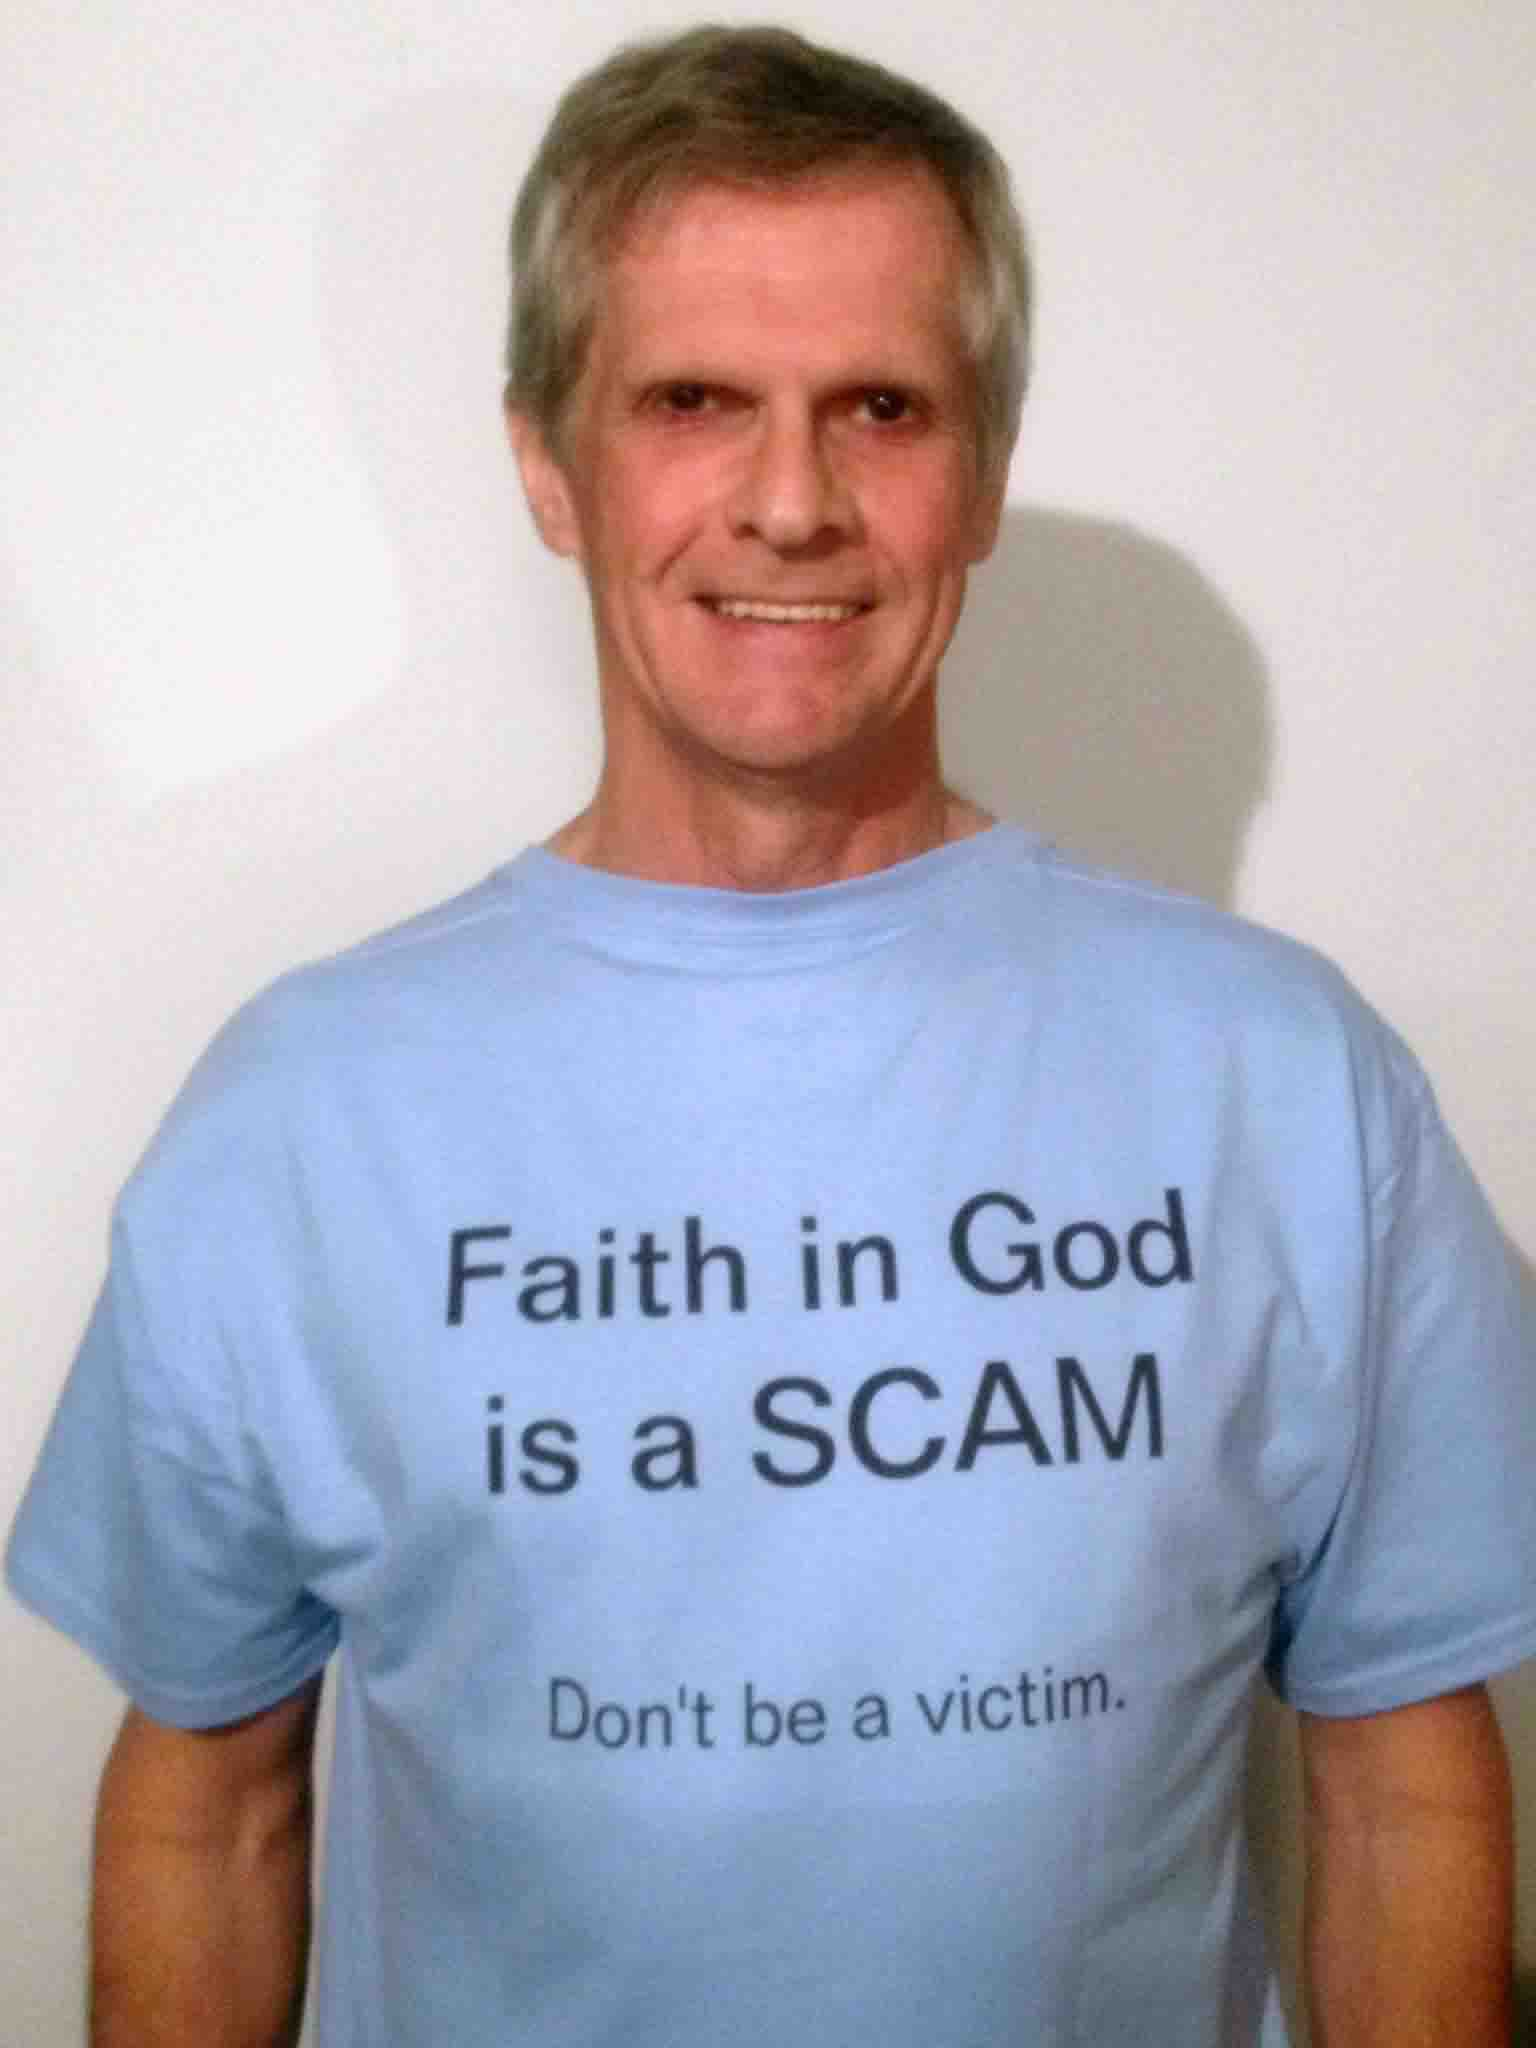 Darwin Bedford wearing his shirt that says 'Faith in God is a Scam -- Don't be a victim'